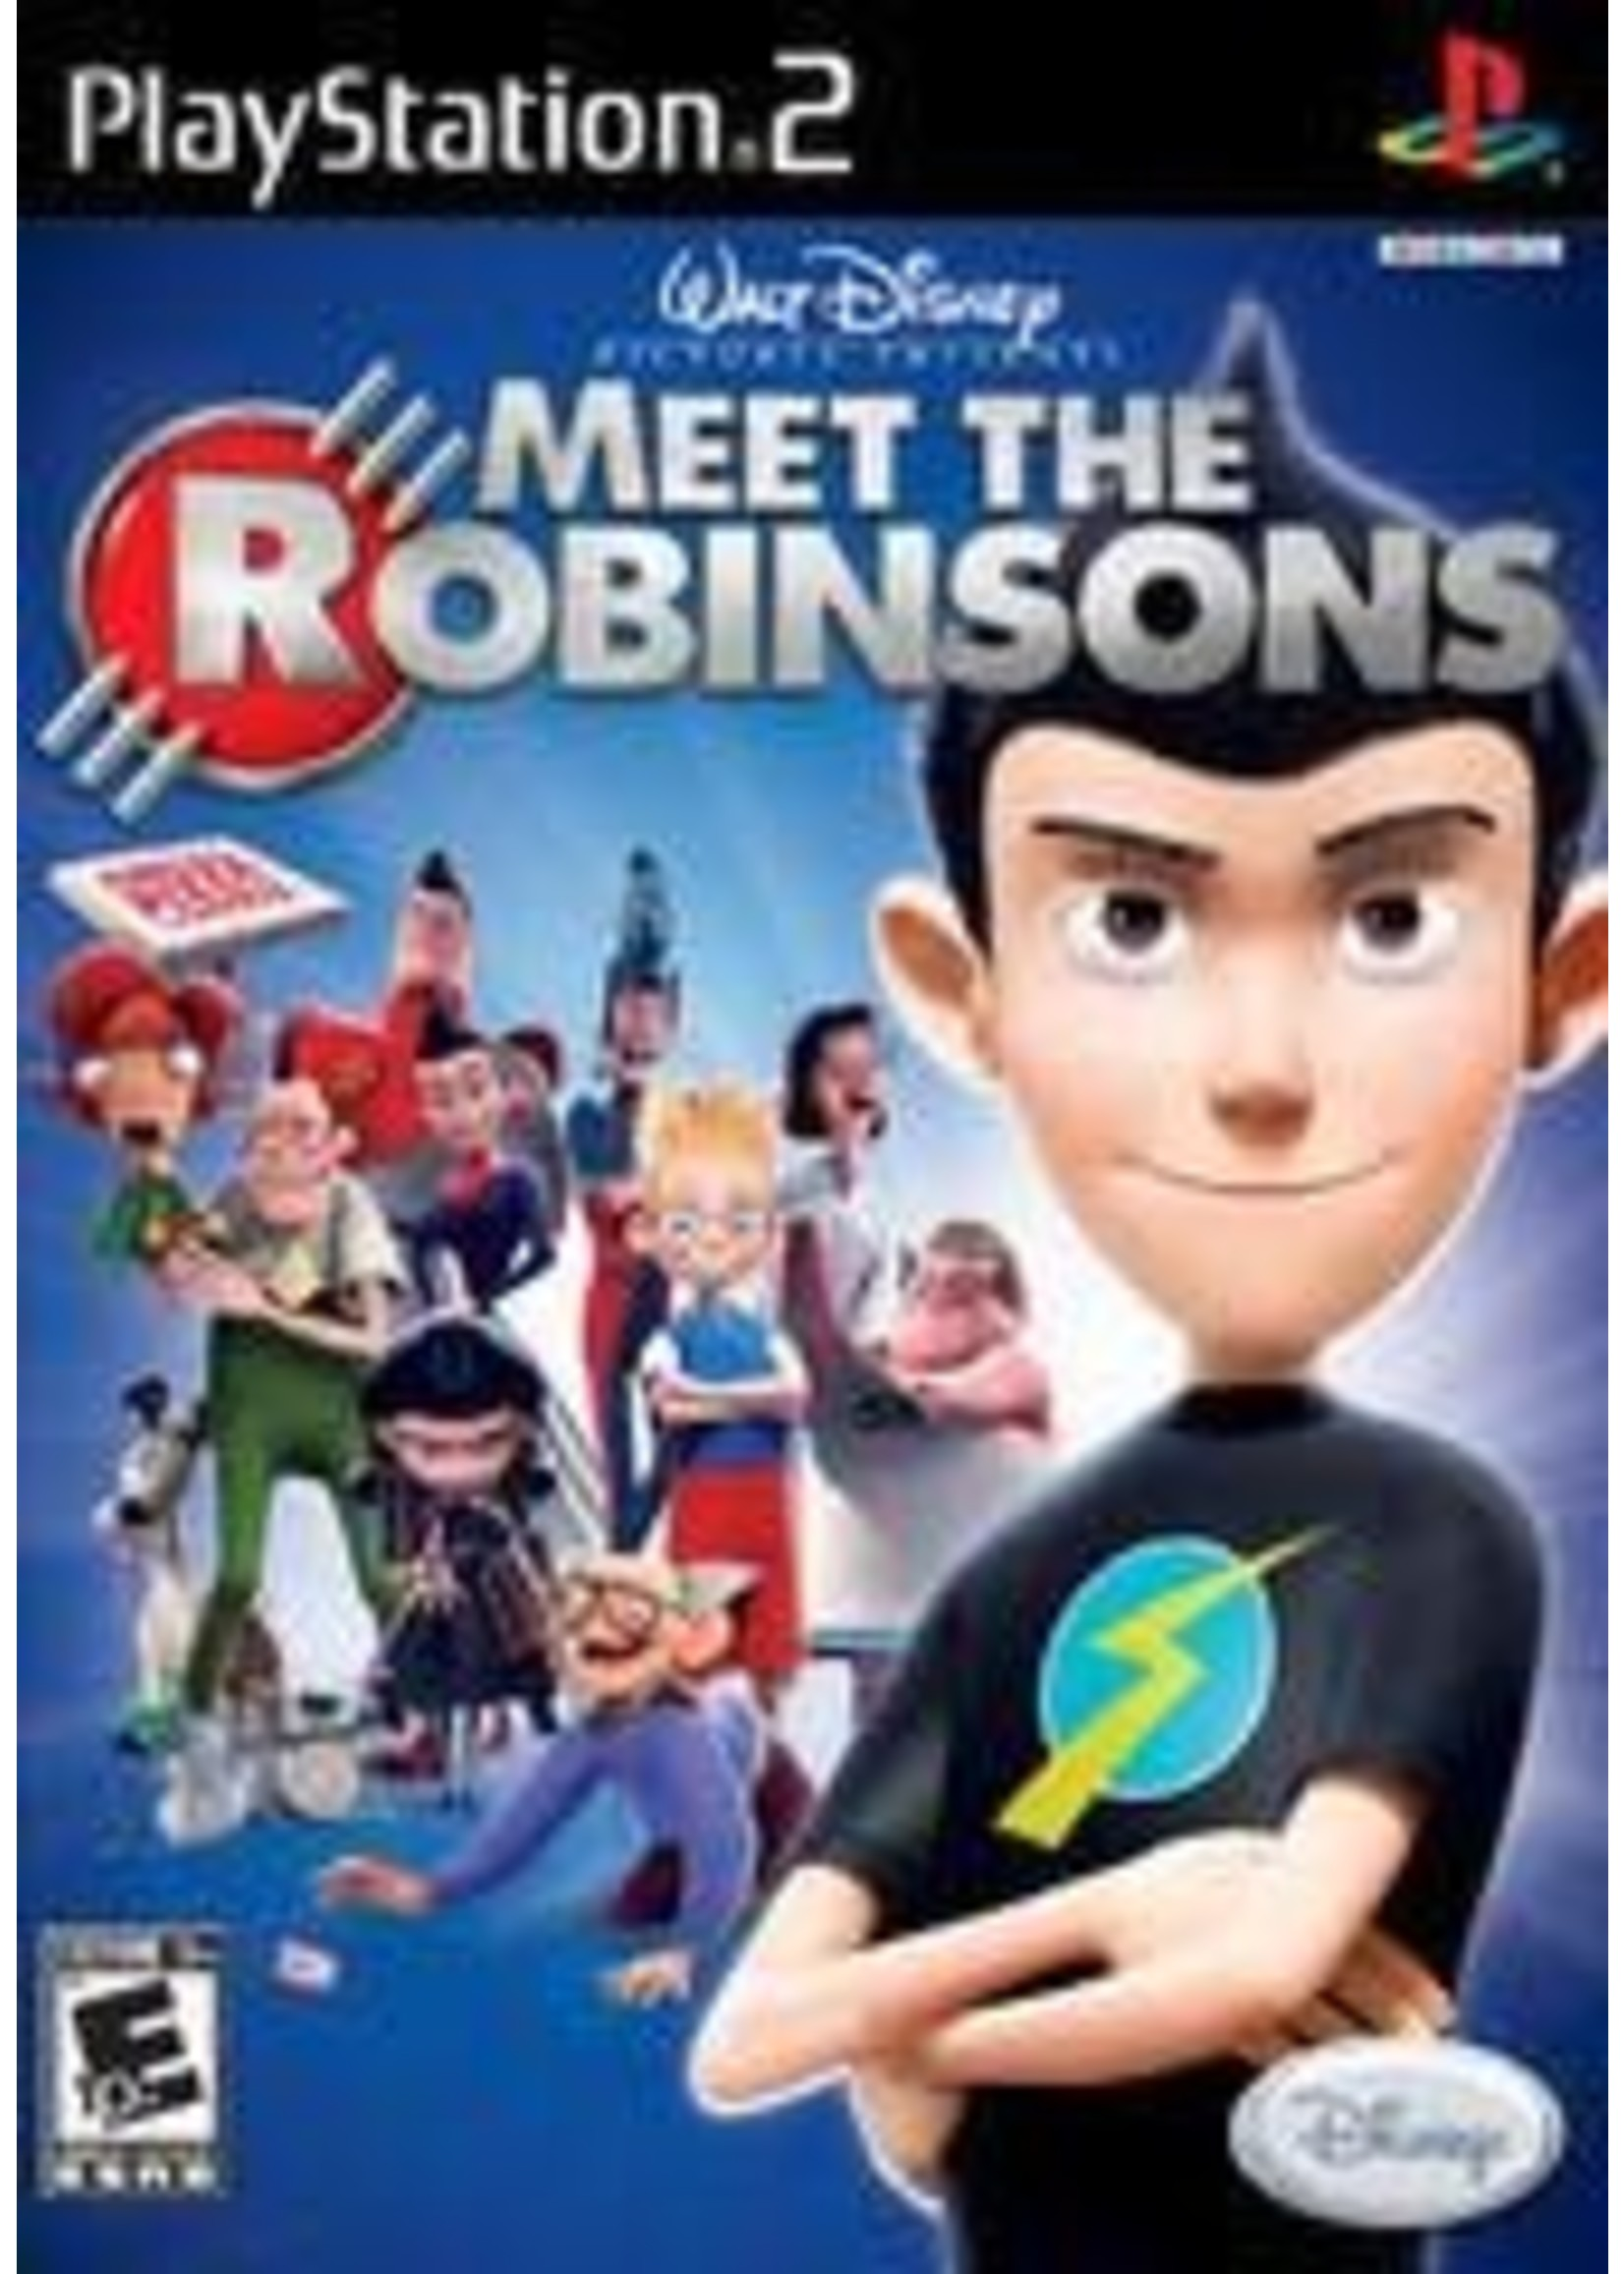 Meet The Robinsons Playstation 2